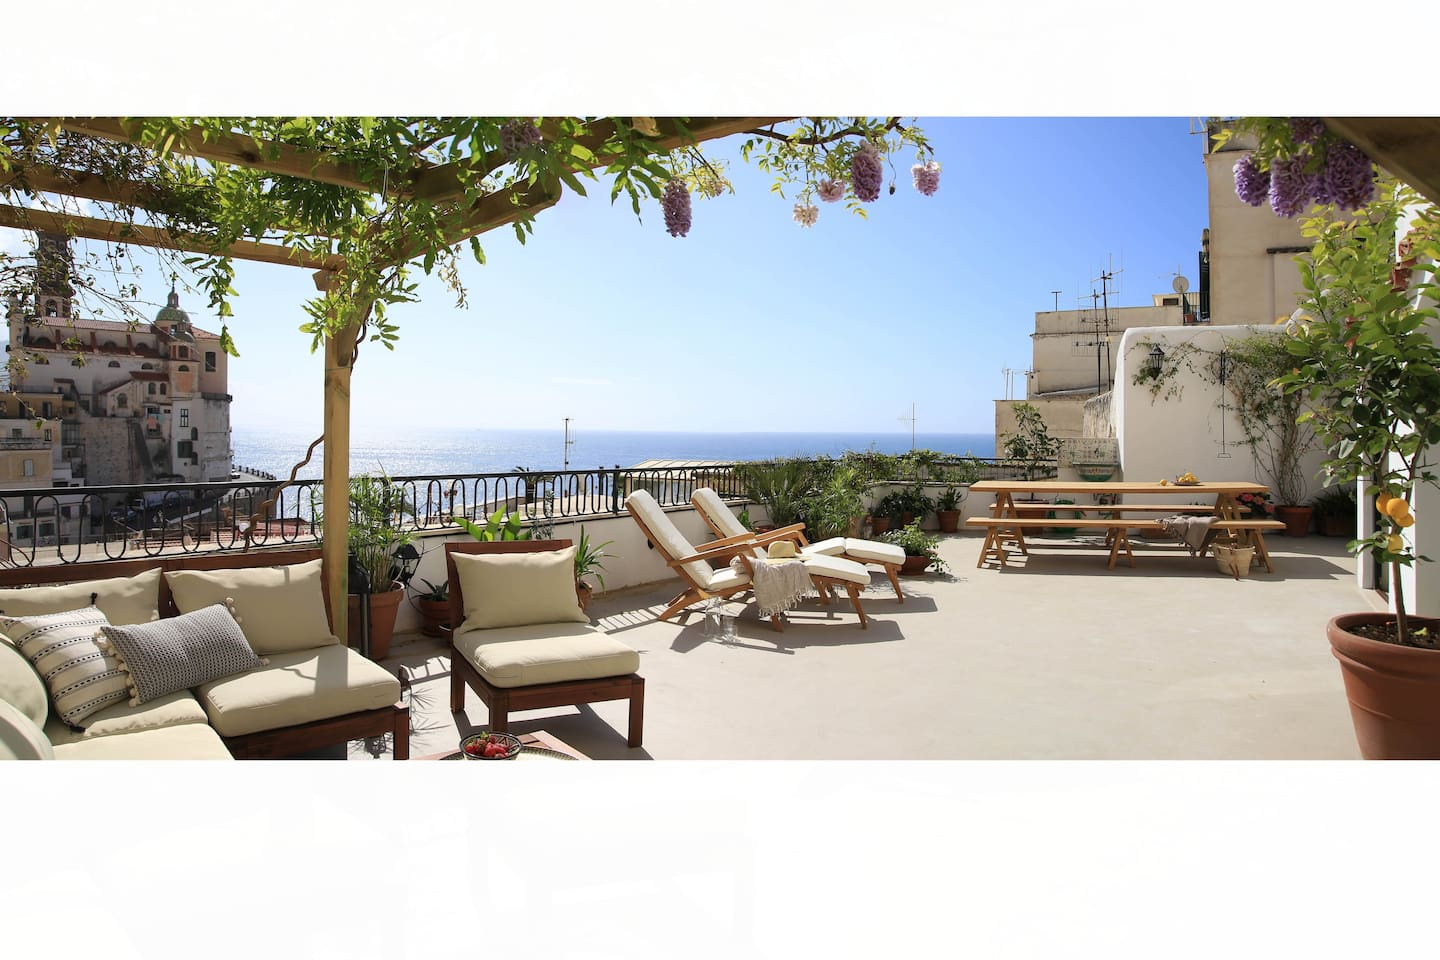 The spacious terrace offers a magnificent view over the village and the sea